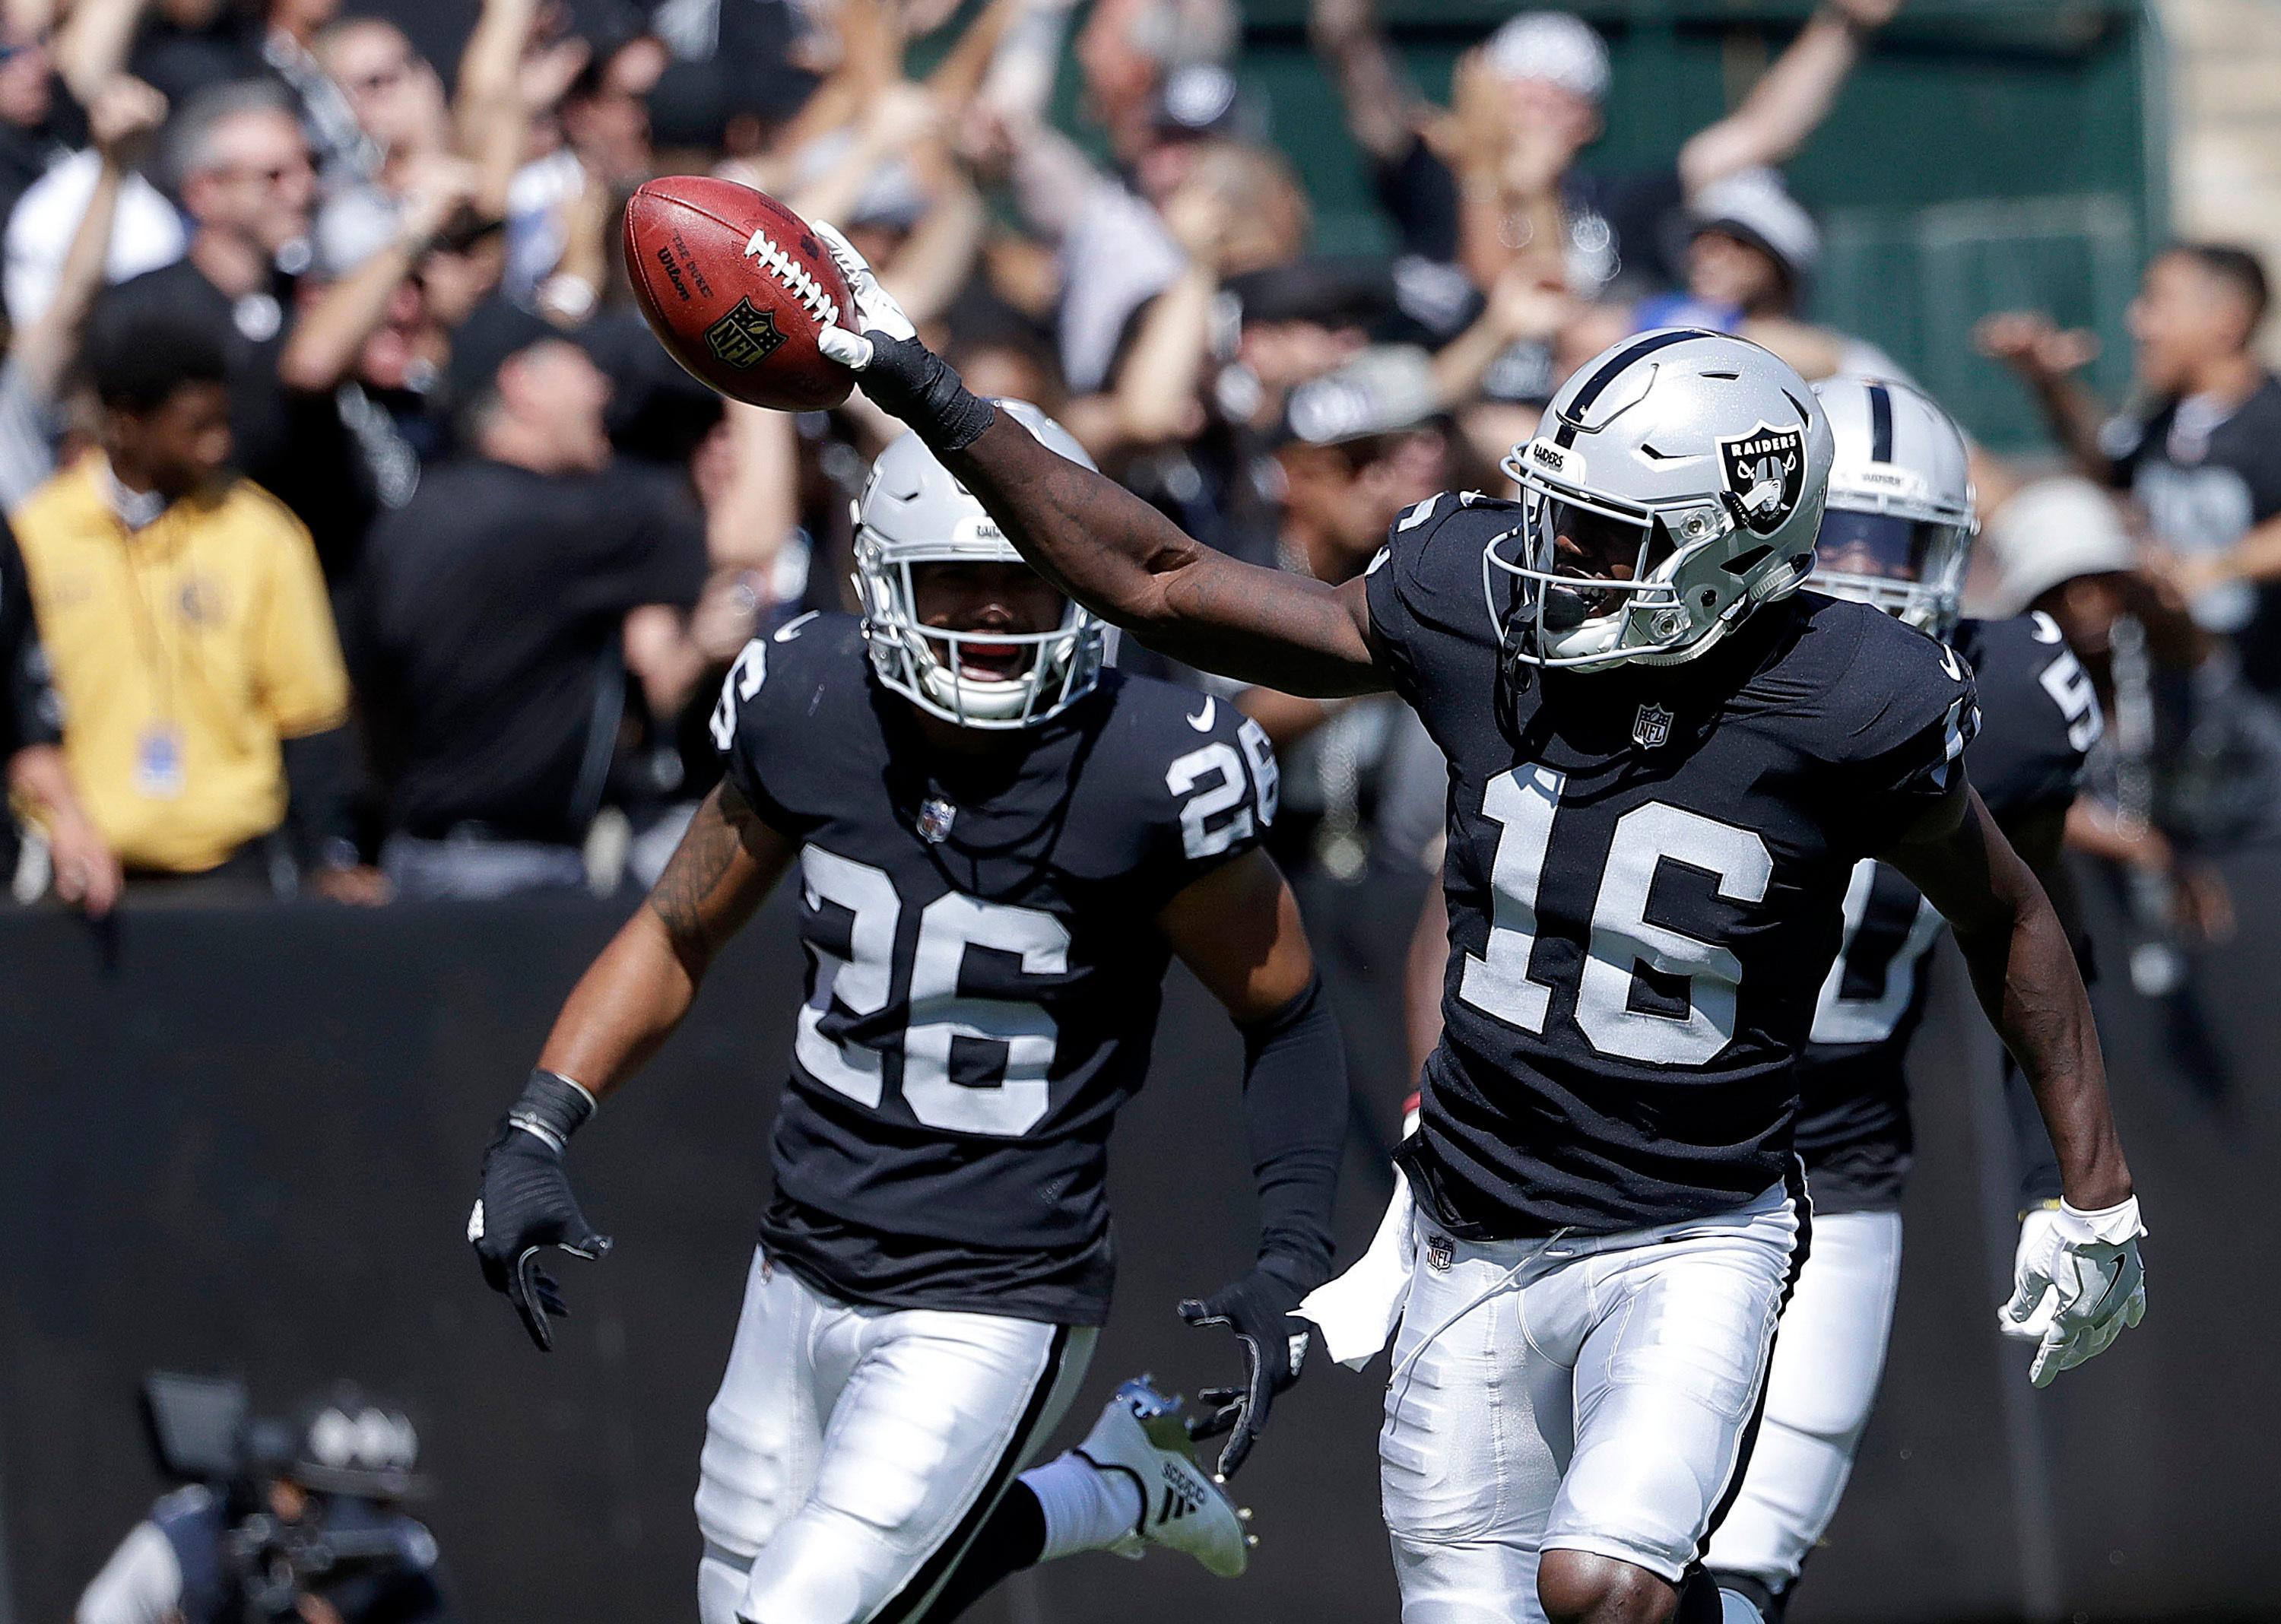 Oakland Raiders' Johnny Holton (16) celebrates after recovering a fumble by New York Jets' Kalif Raymond during the first half of an NFL football game in Oakland, Calif., Sunday, Sept. 17, 2017. (AP Photo/Marcio Jose Sanchez)